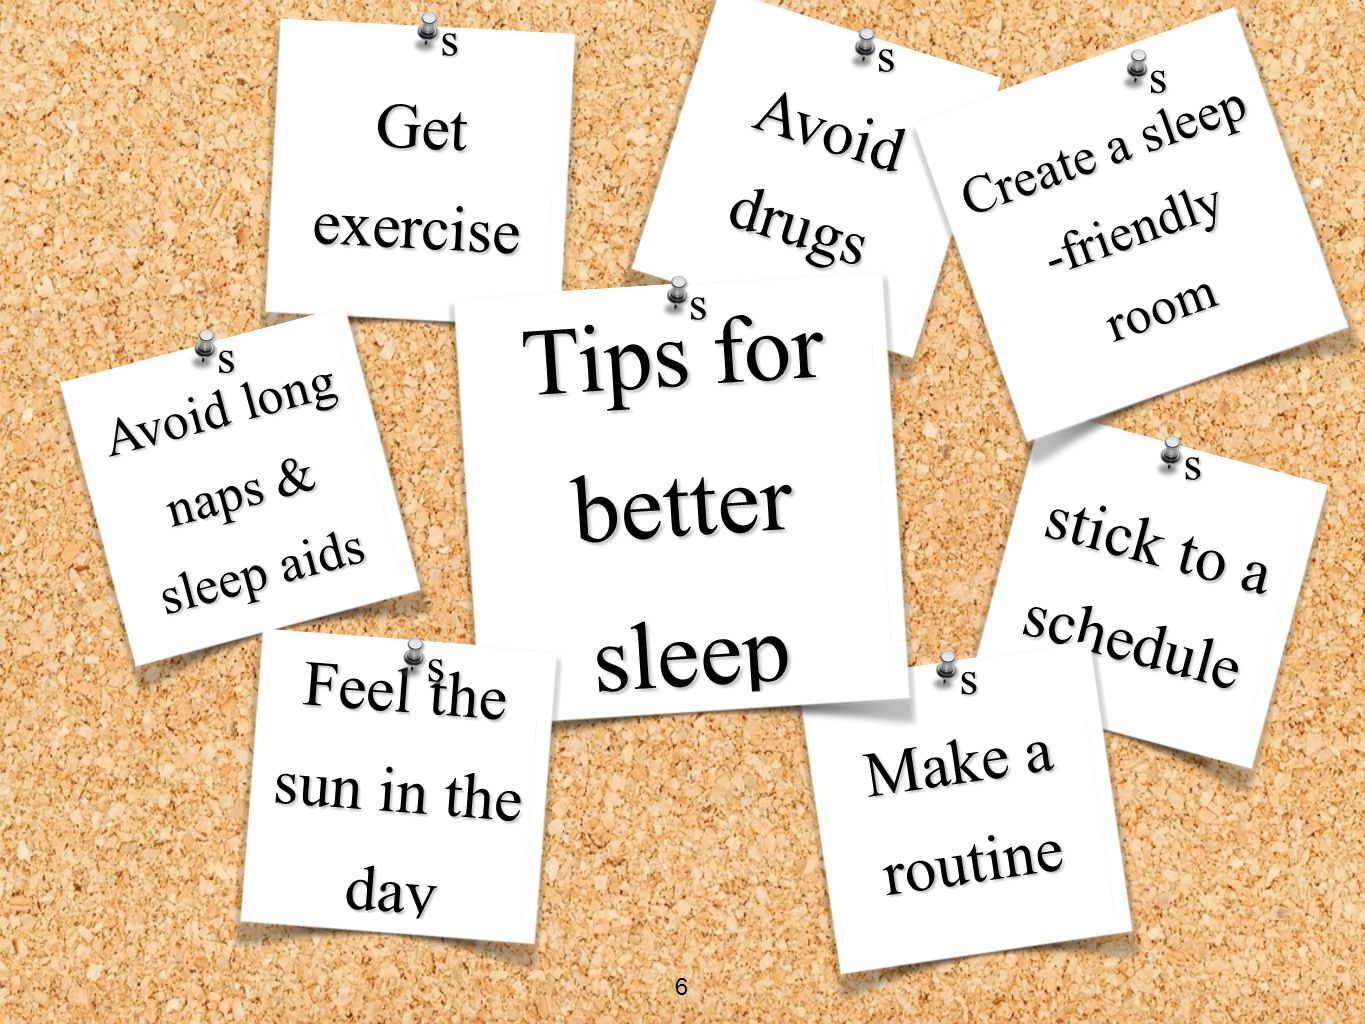 Tips for better sleep Avoid drugs Get exercise stick to a schedule